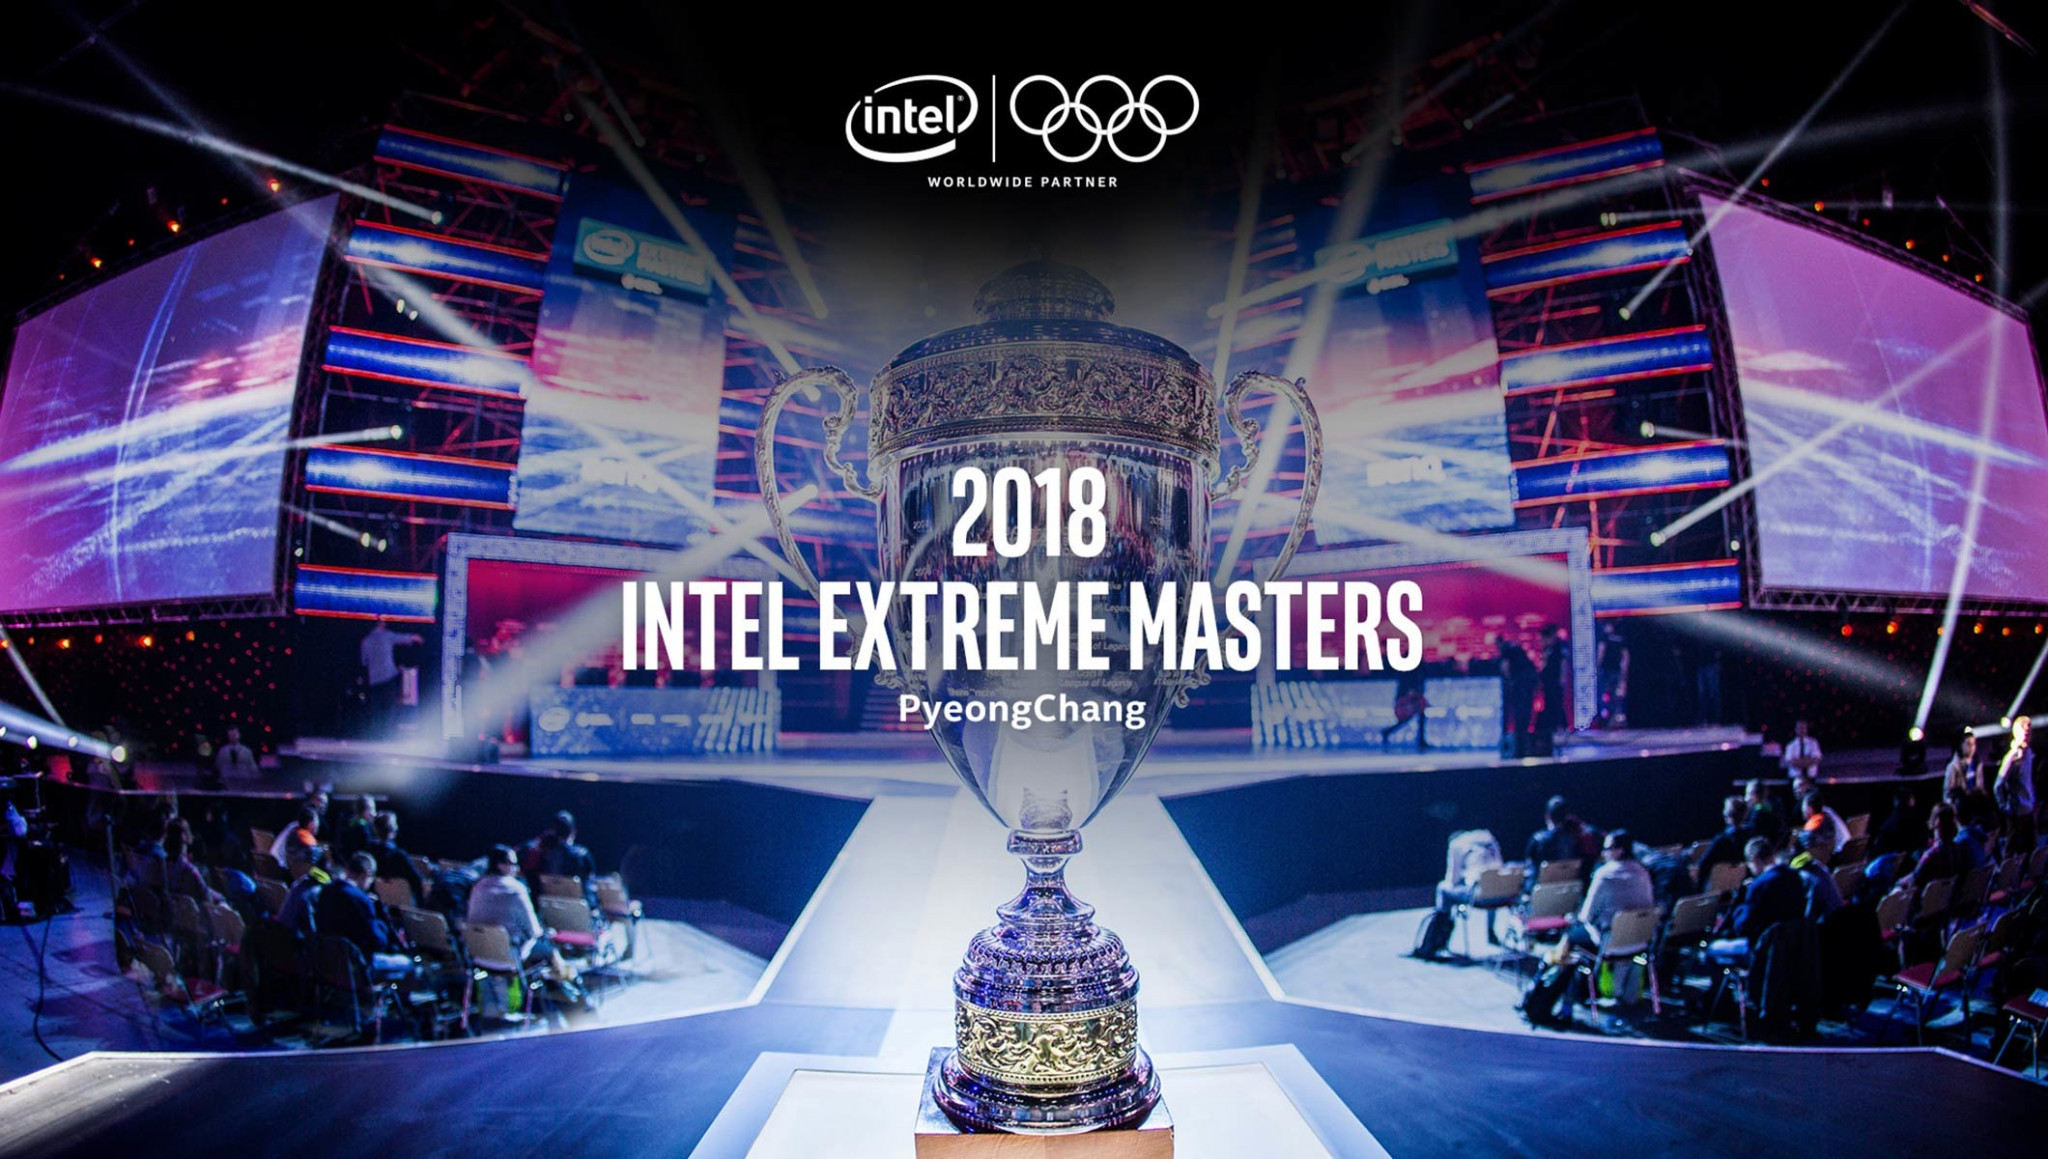 Intel have announced an esports event prior to the Pyeongchang 2018 Winter Olympics ©Intel